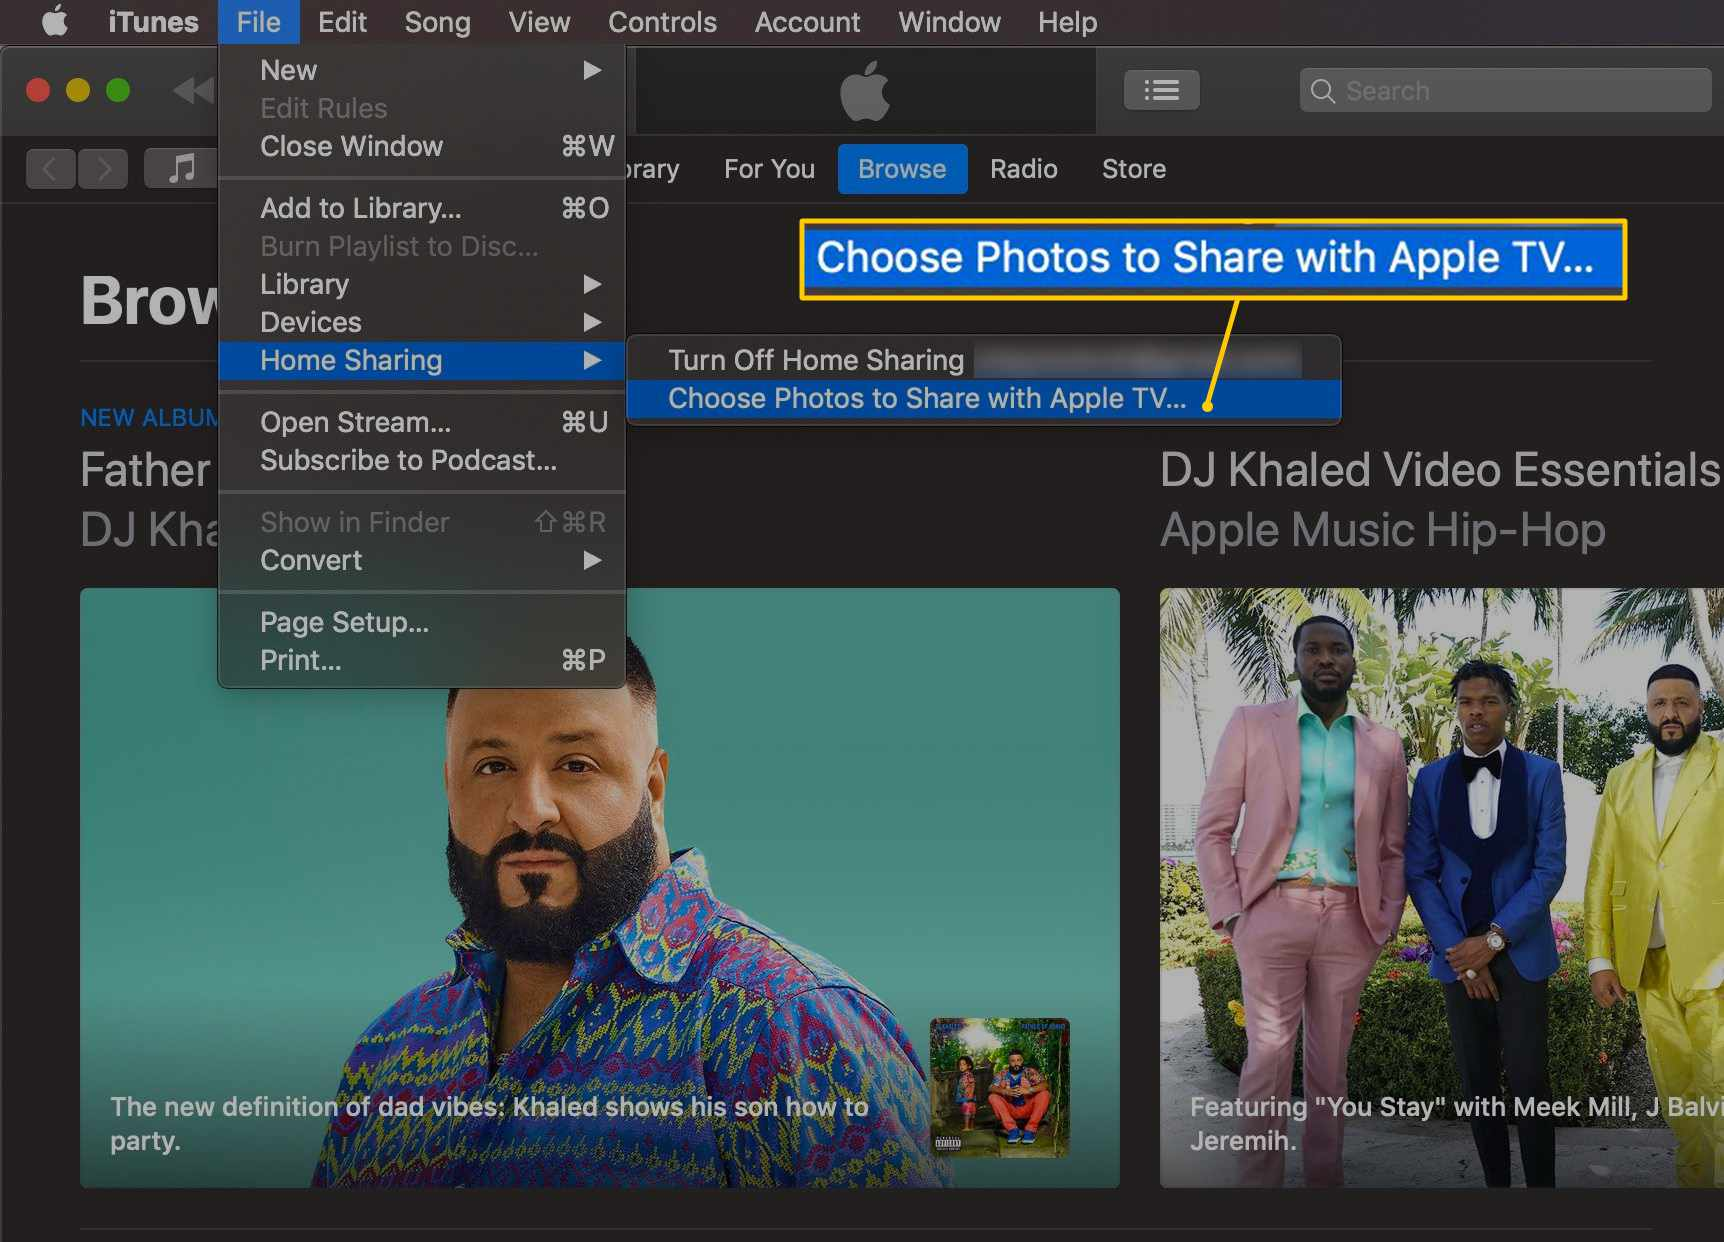 Choose Photos to Share with Apple TV menu item in iTunes